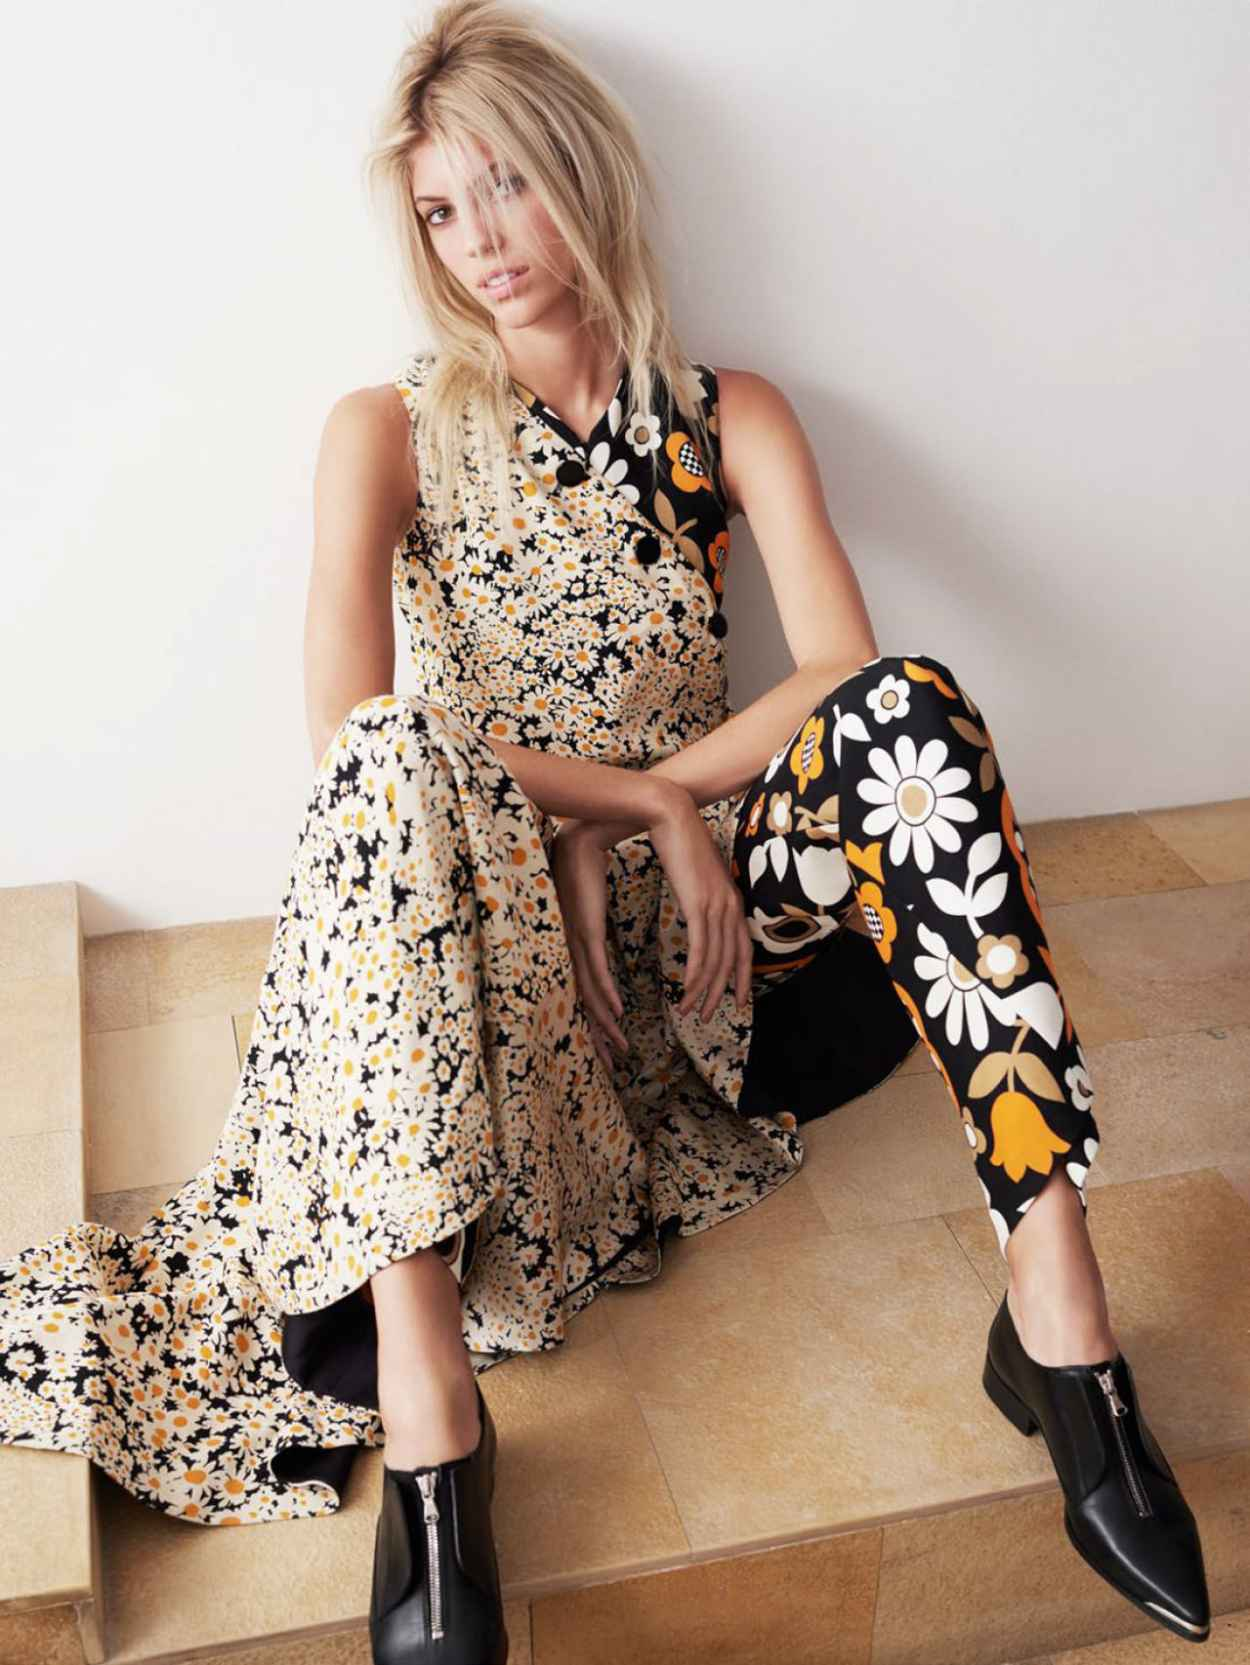 Devon Windsor - Photoshoot for Vogue Turkey March 2015-1